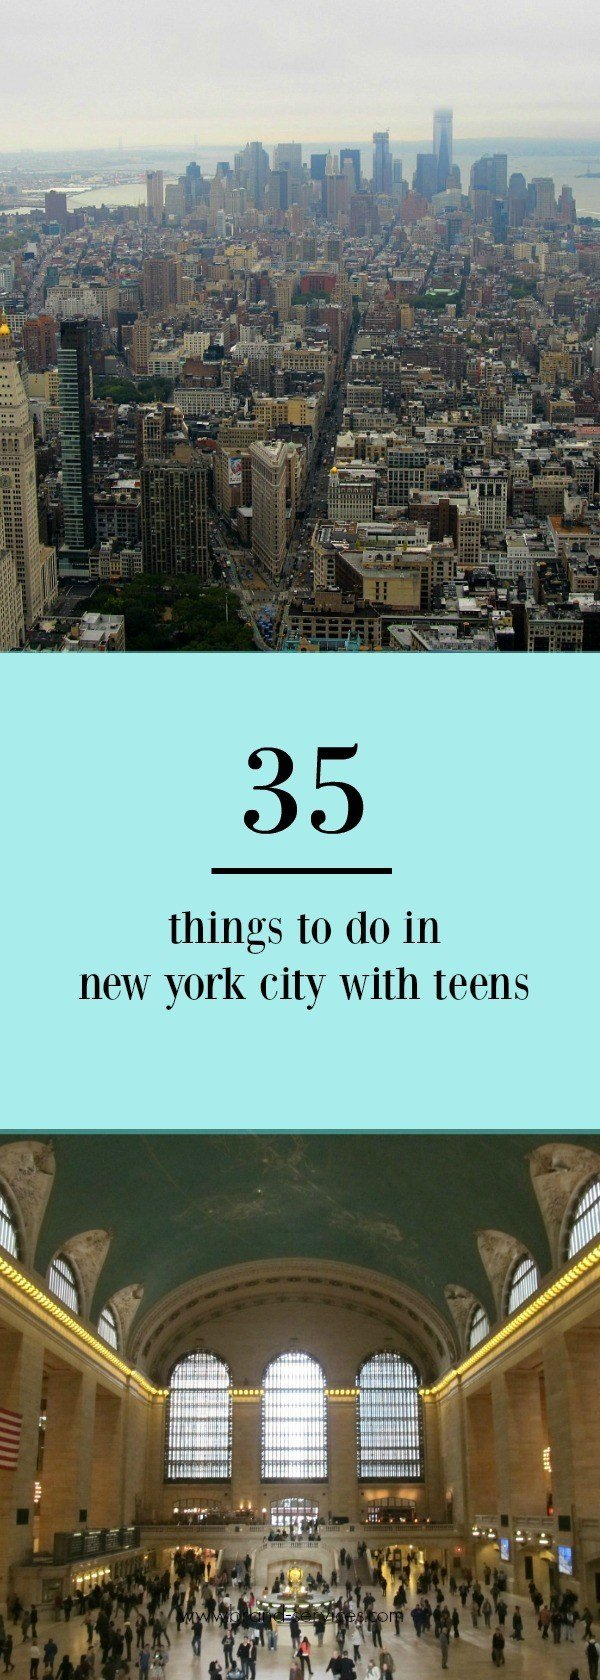 things to do in new york city with teens for an